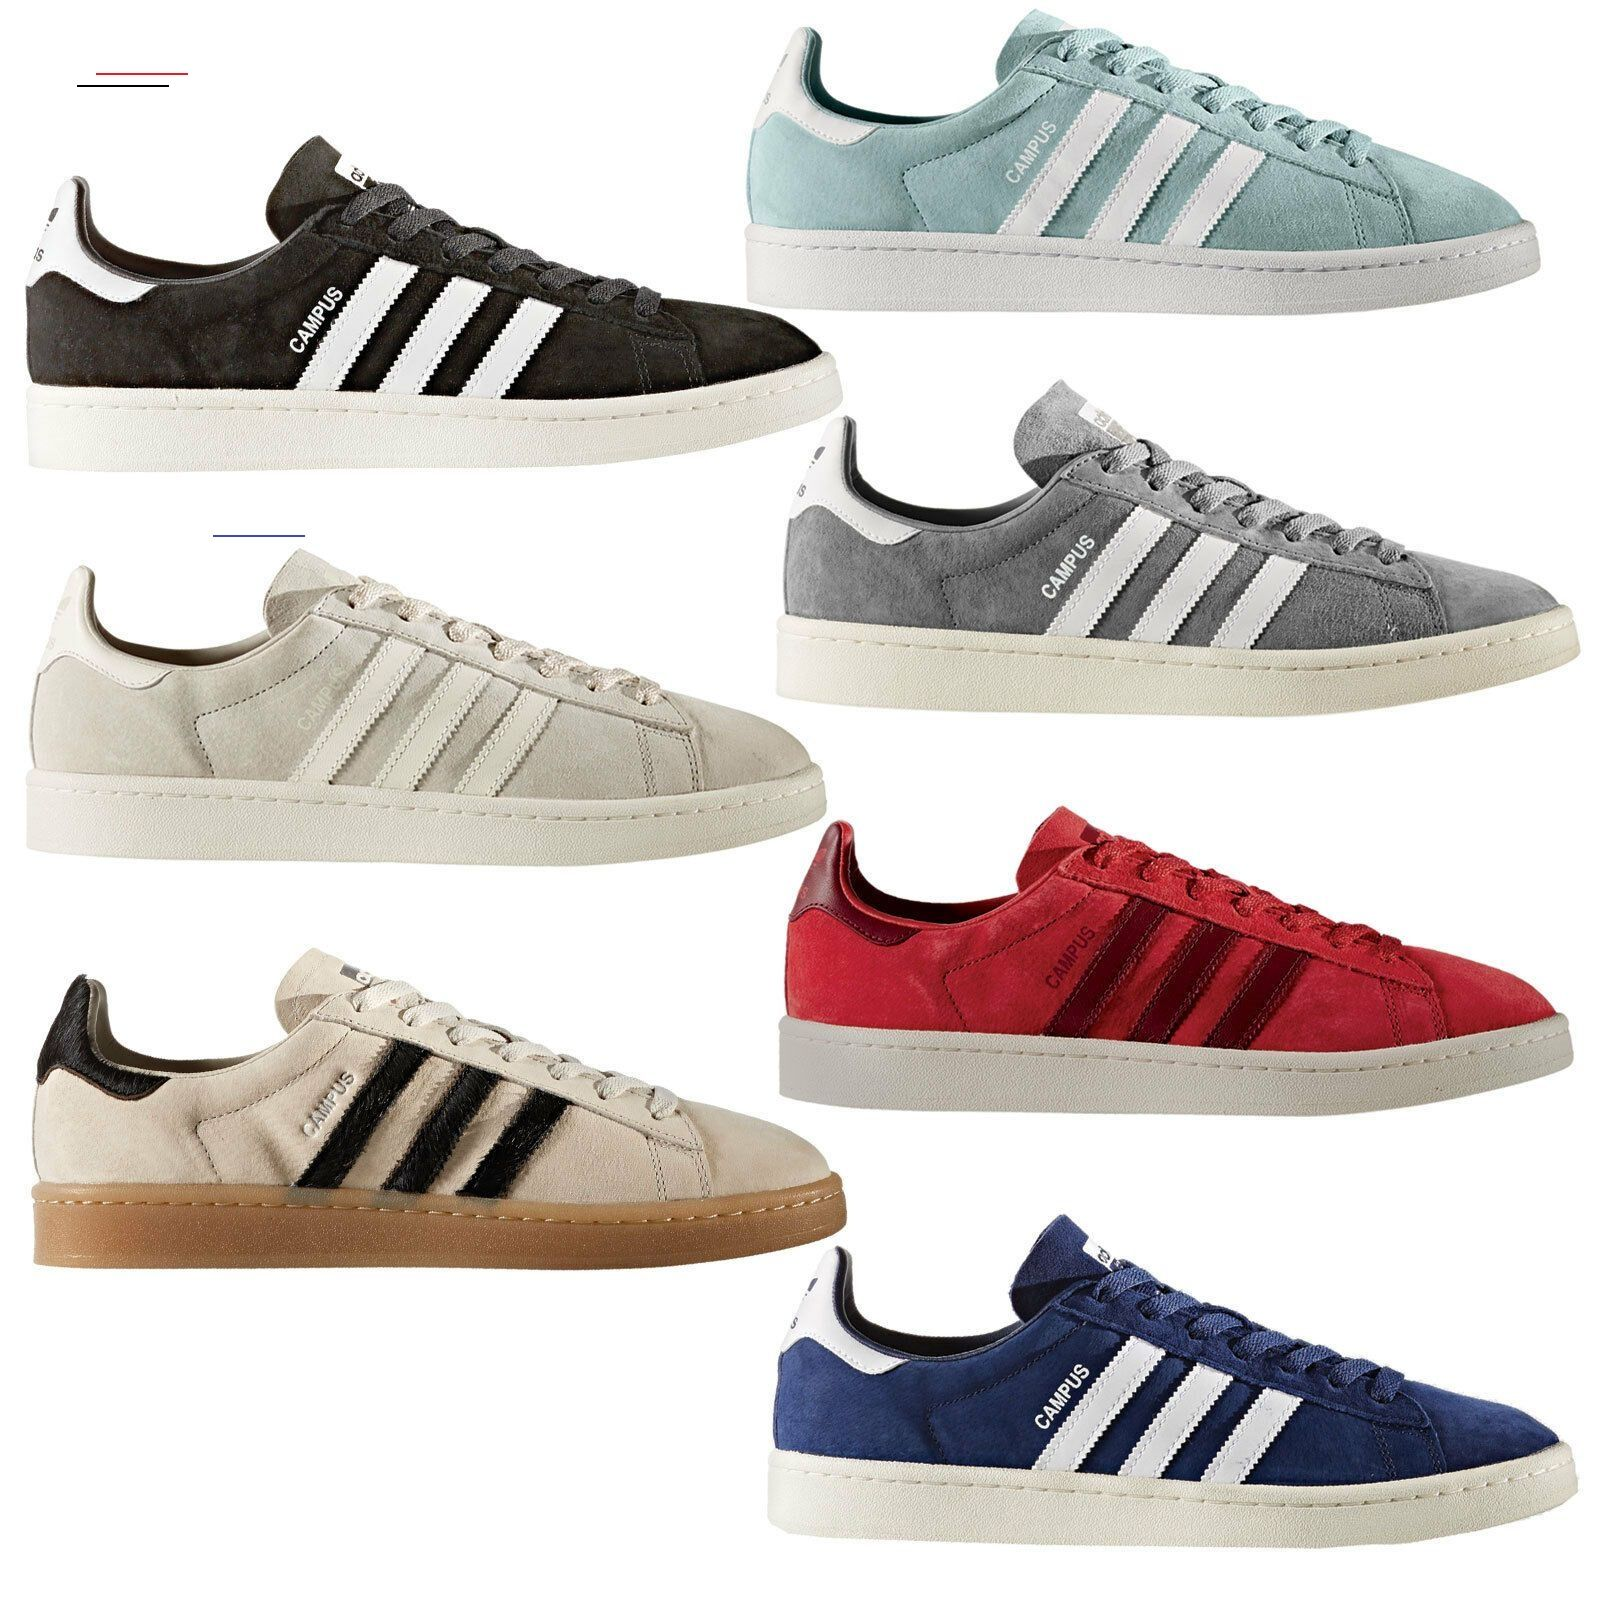 adidas donna sneakers estive